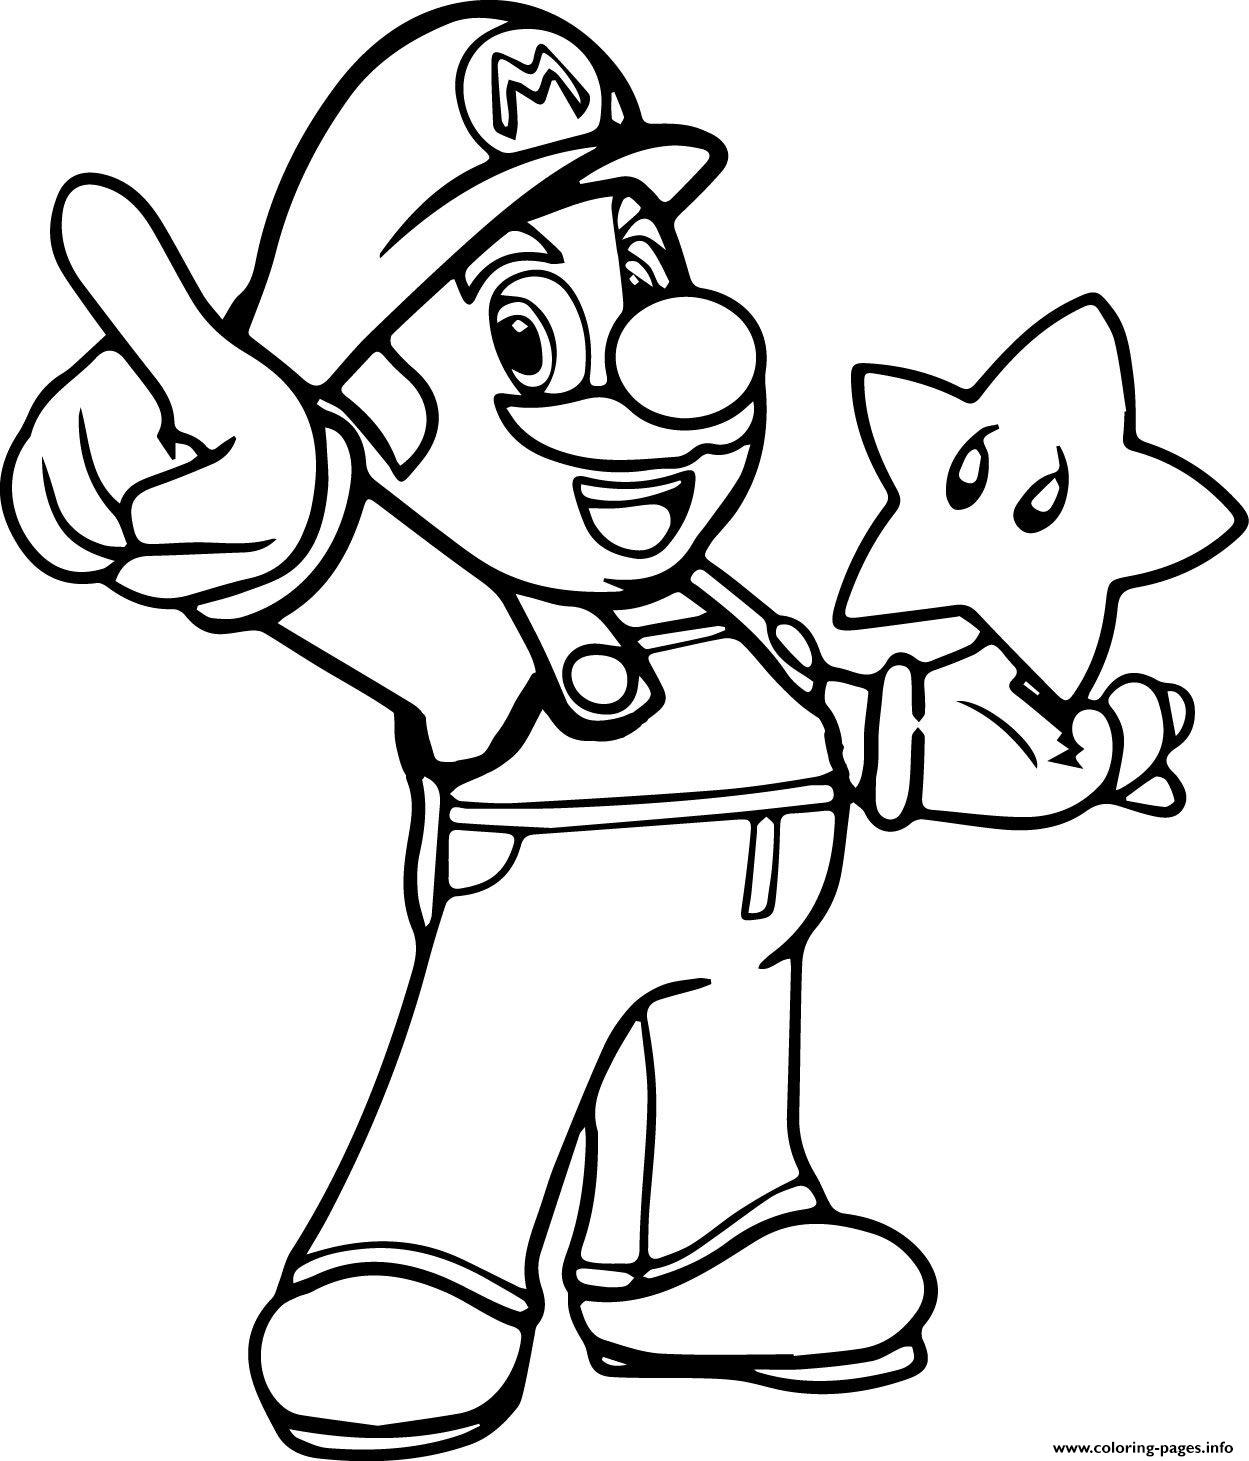 super mario pictures new super mario coloring pages download and print for free pictures super mario